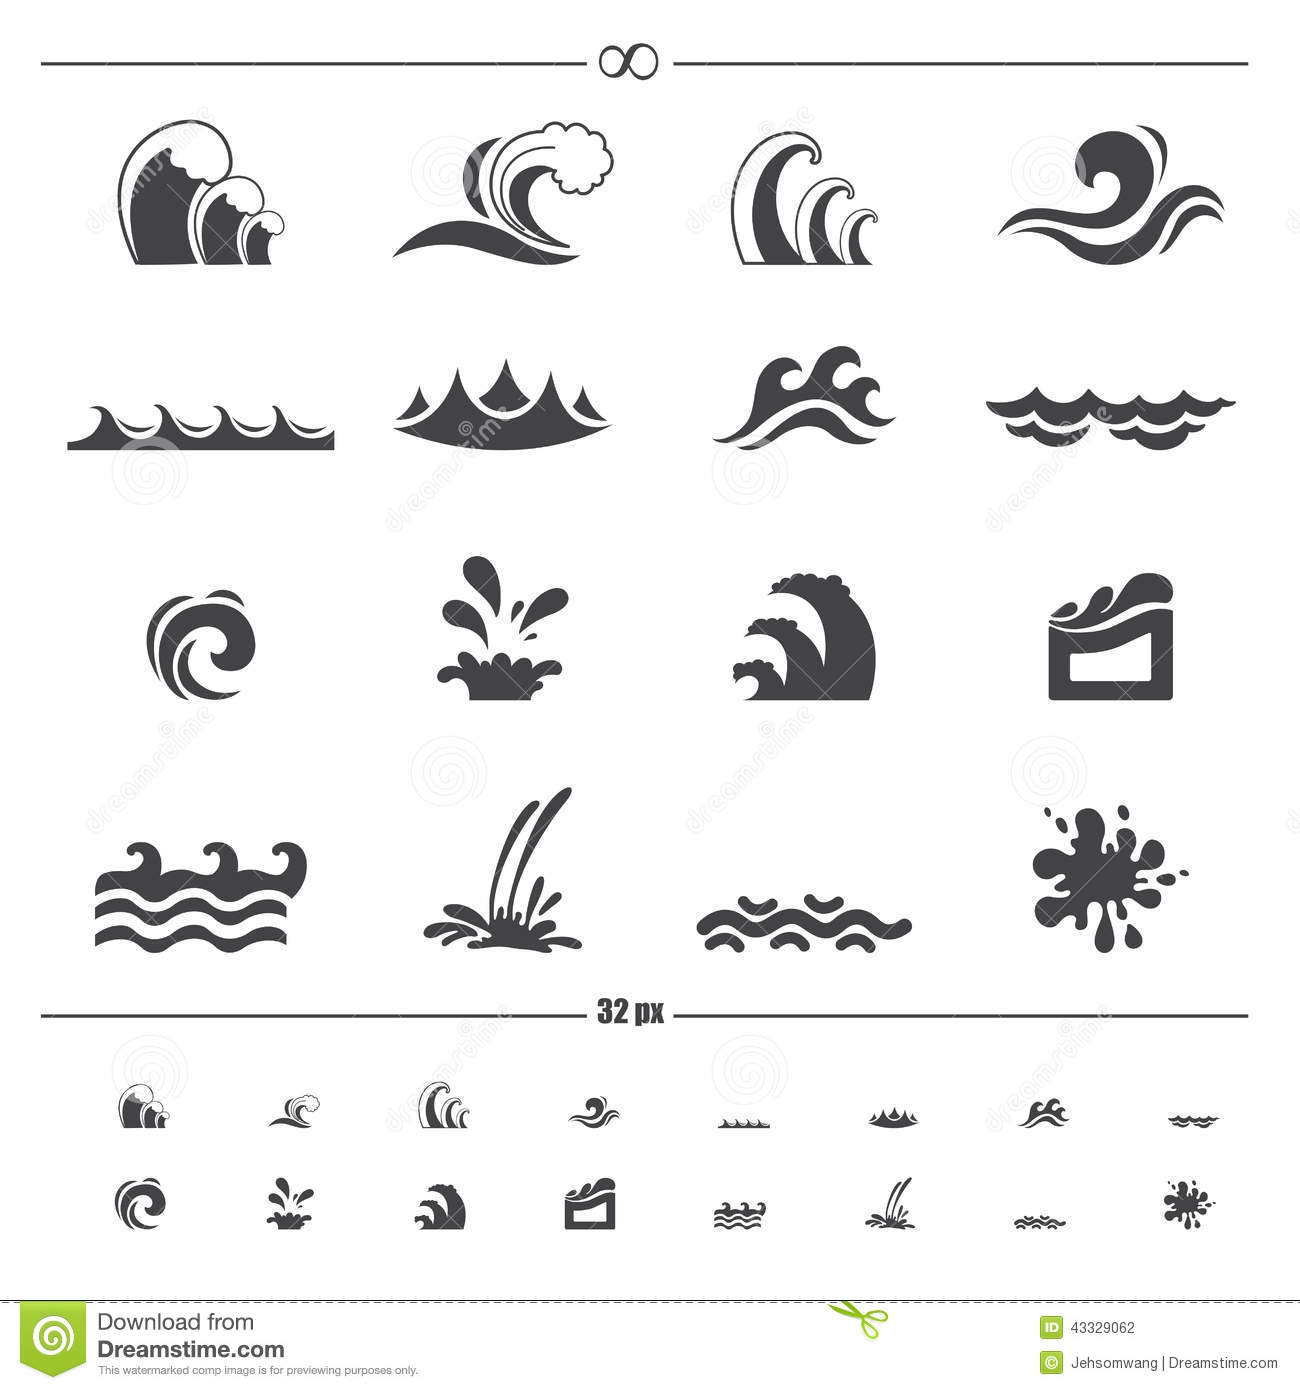 Water wave icons vector